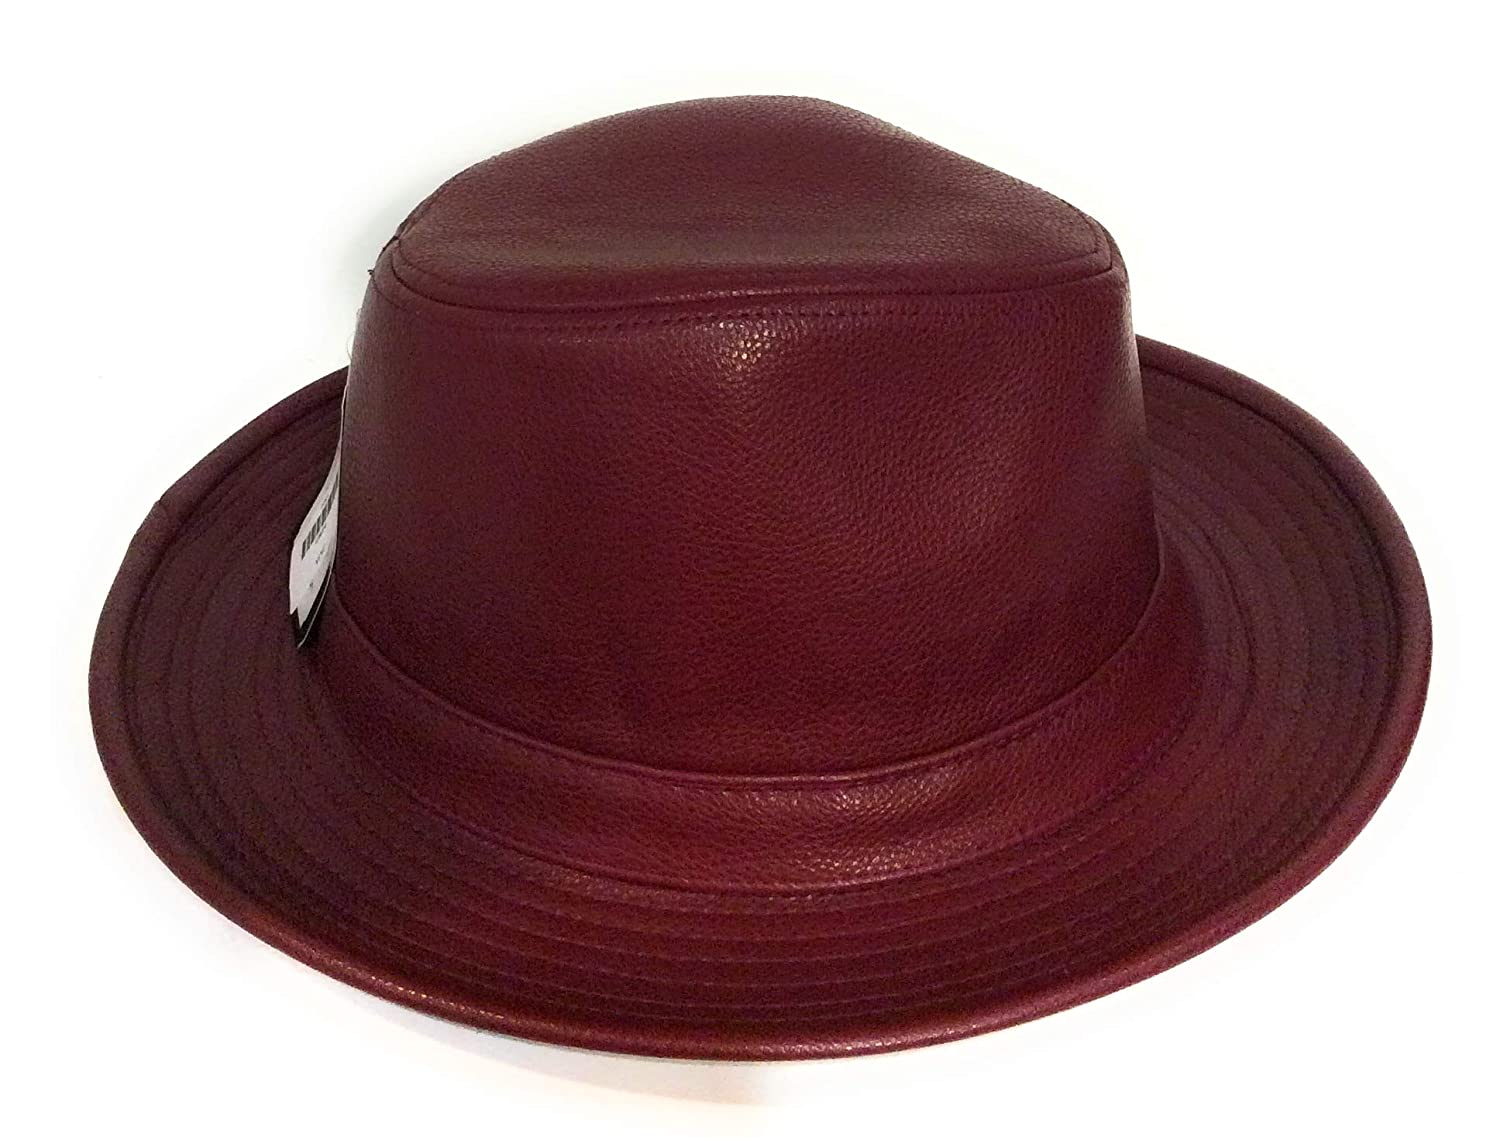 Bruno Capelo Hats for Men Burgundy